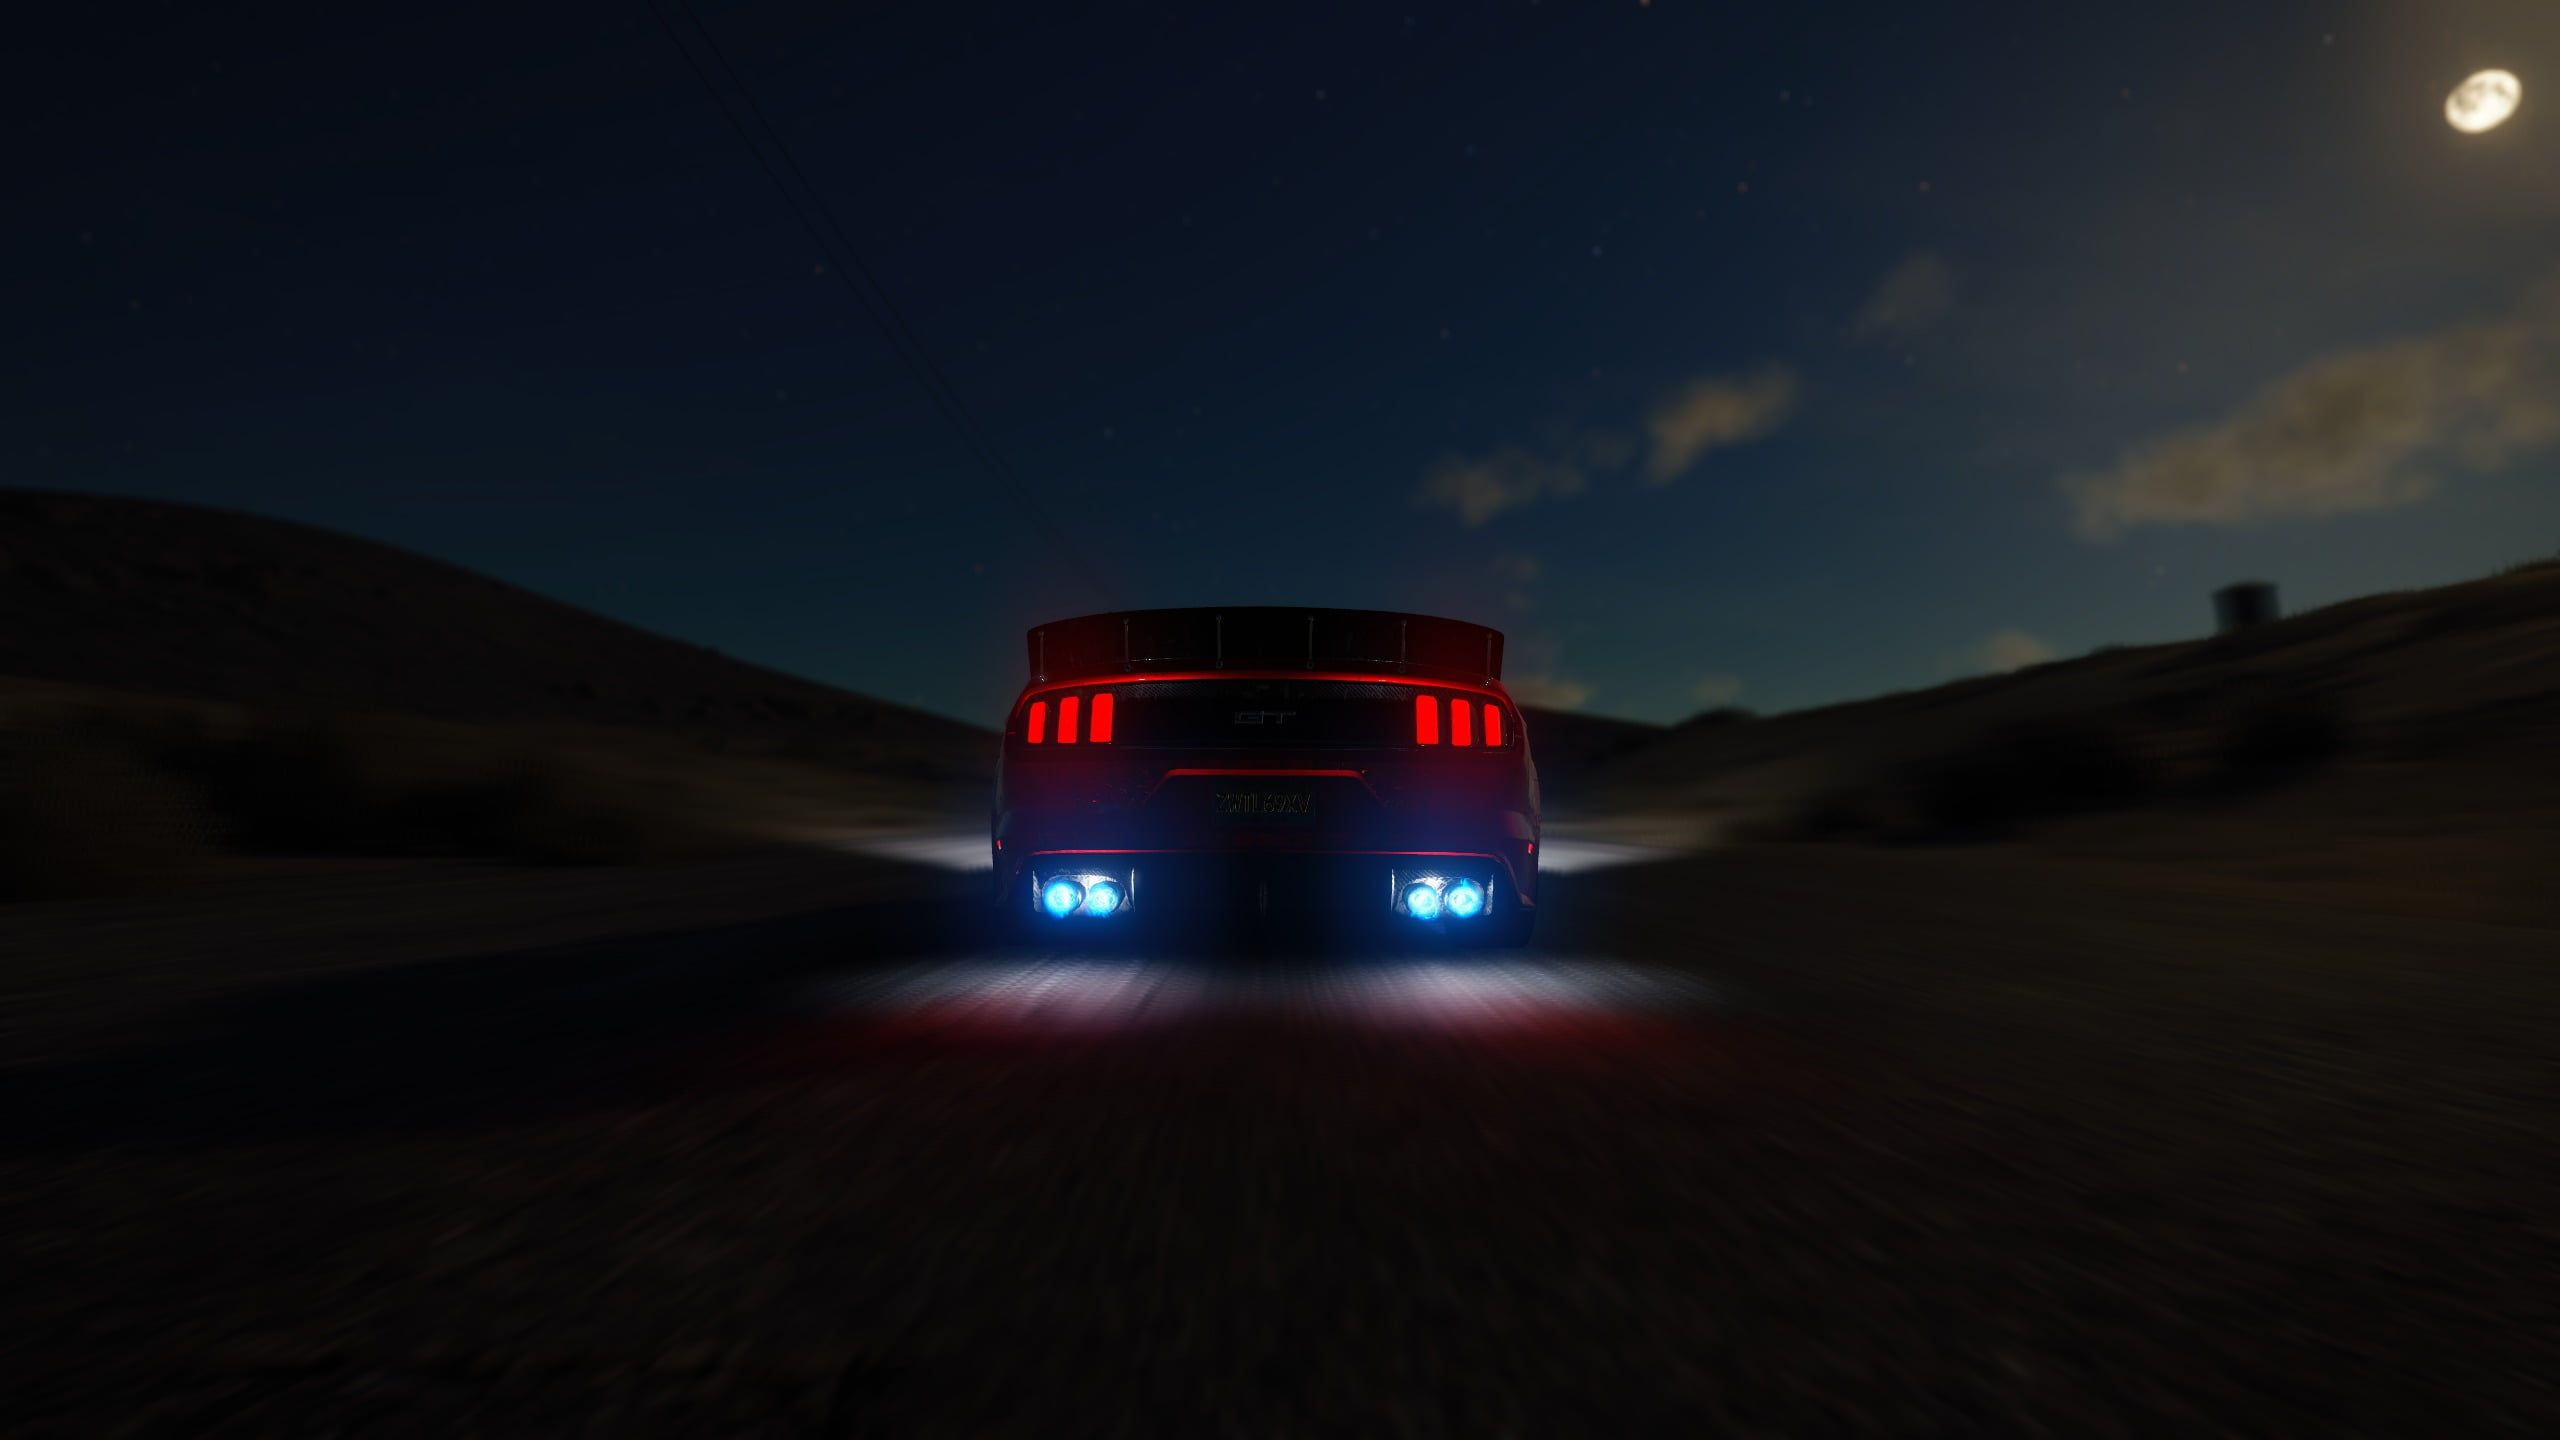 Untitled Ford Mustang Gt The Crew Car Nitro 2k Wallpaper Hdwallpaper Desktop Mustang Gt Ford Mustang Gt Mustang